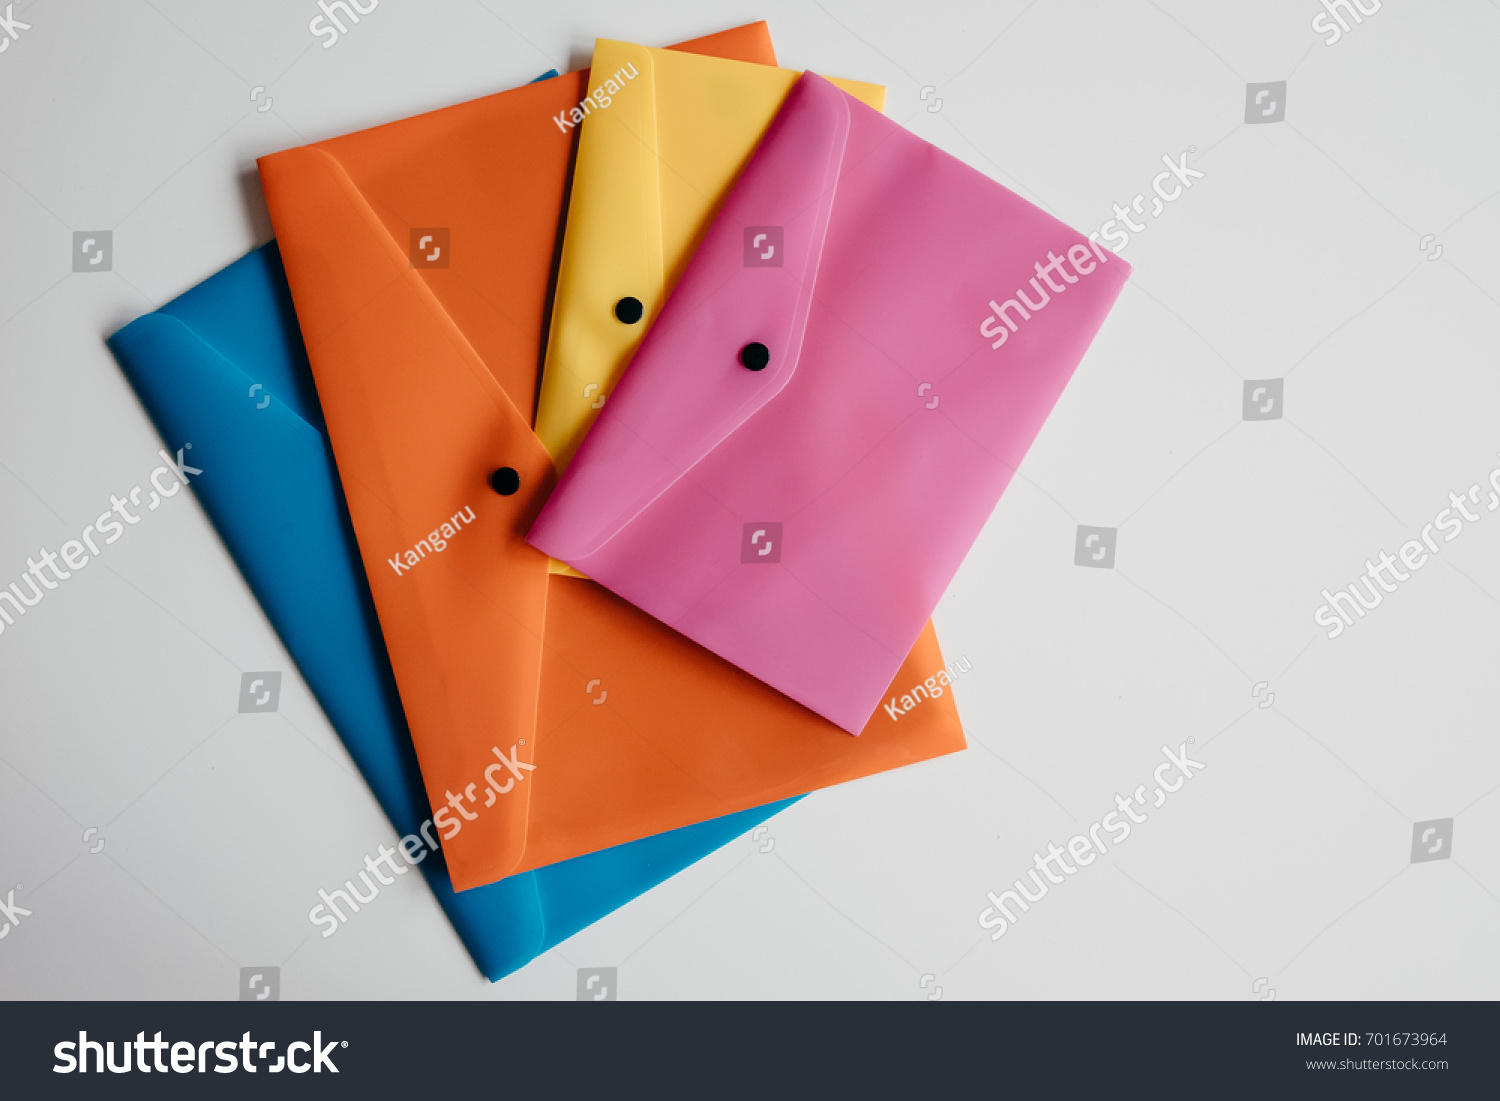 Composition Four Plastic Envelopes Different Colors Stock Photo ...